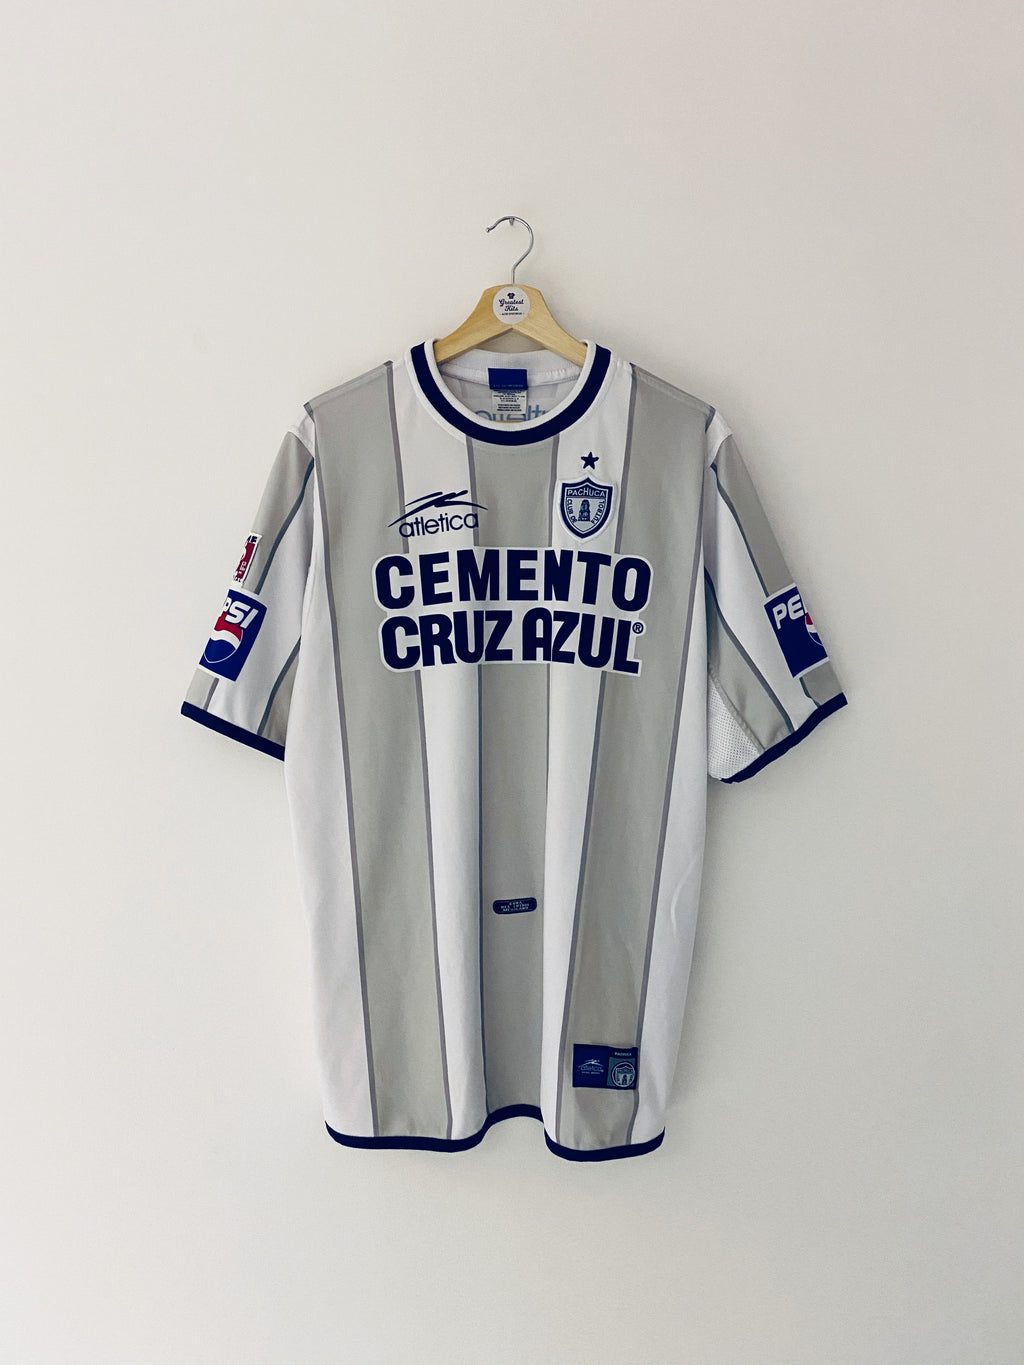 2002/03 Pachuca Away Shirt (XL) 8.5/10